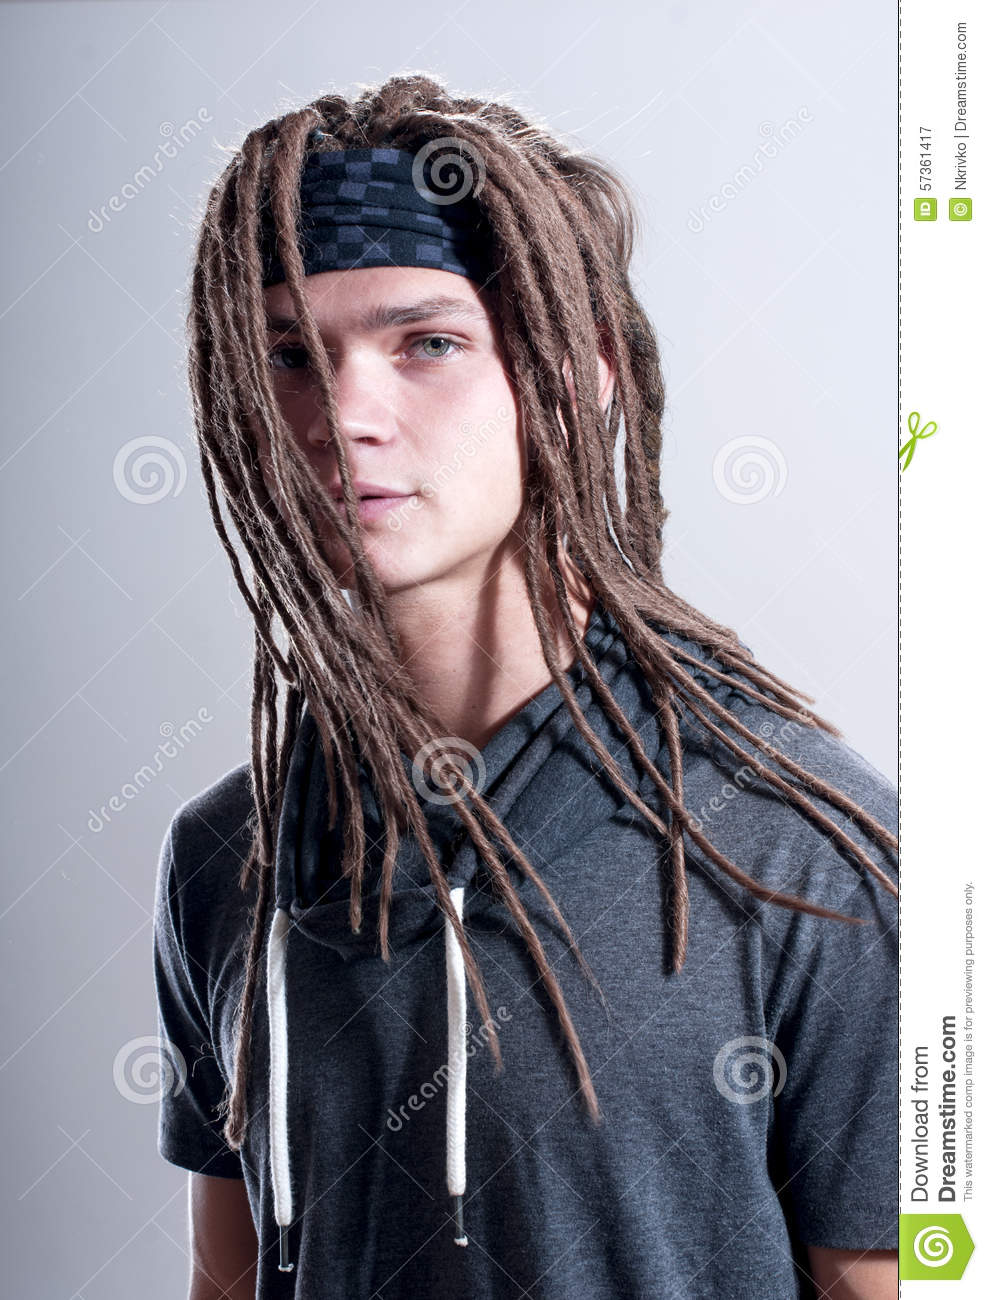 Young Stylish Guy With Dreadlocks Stock Photo Image